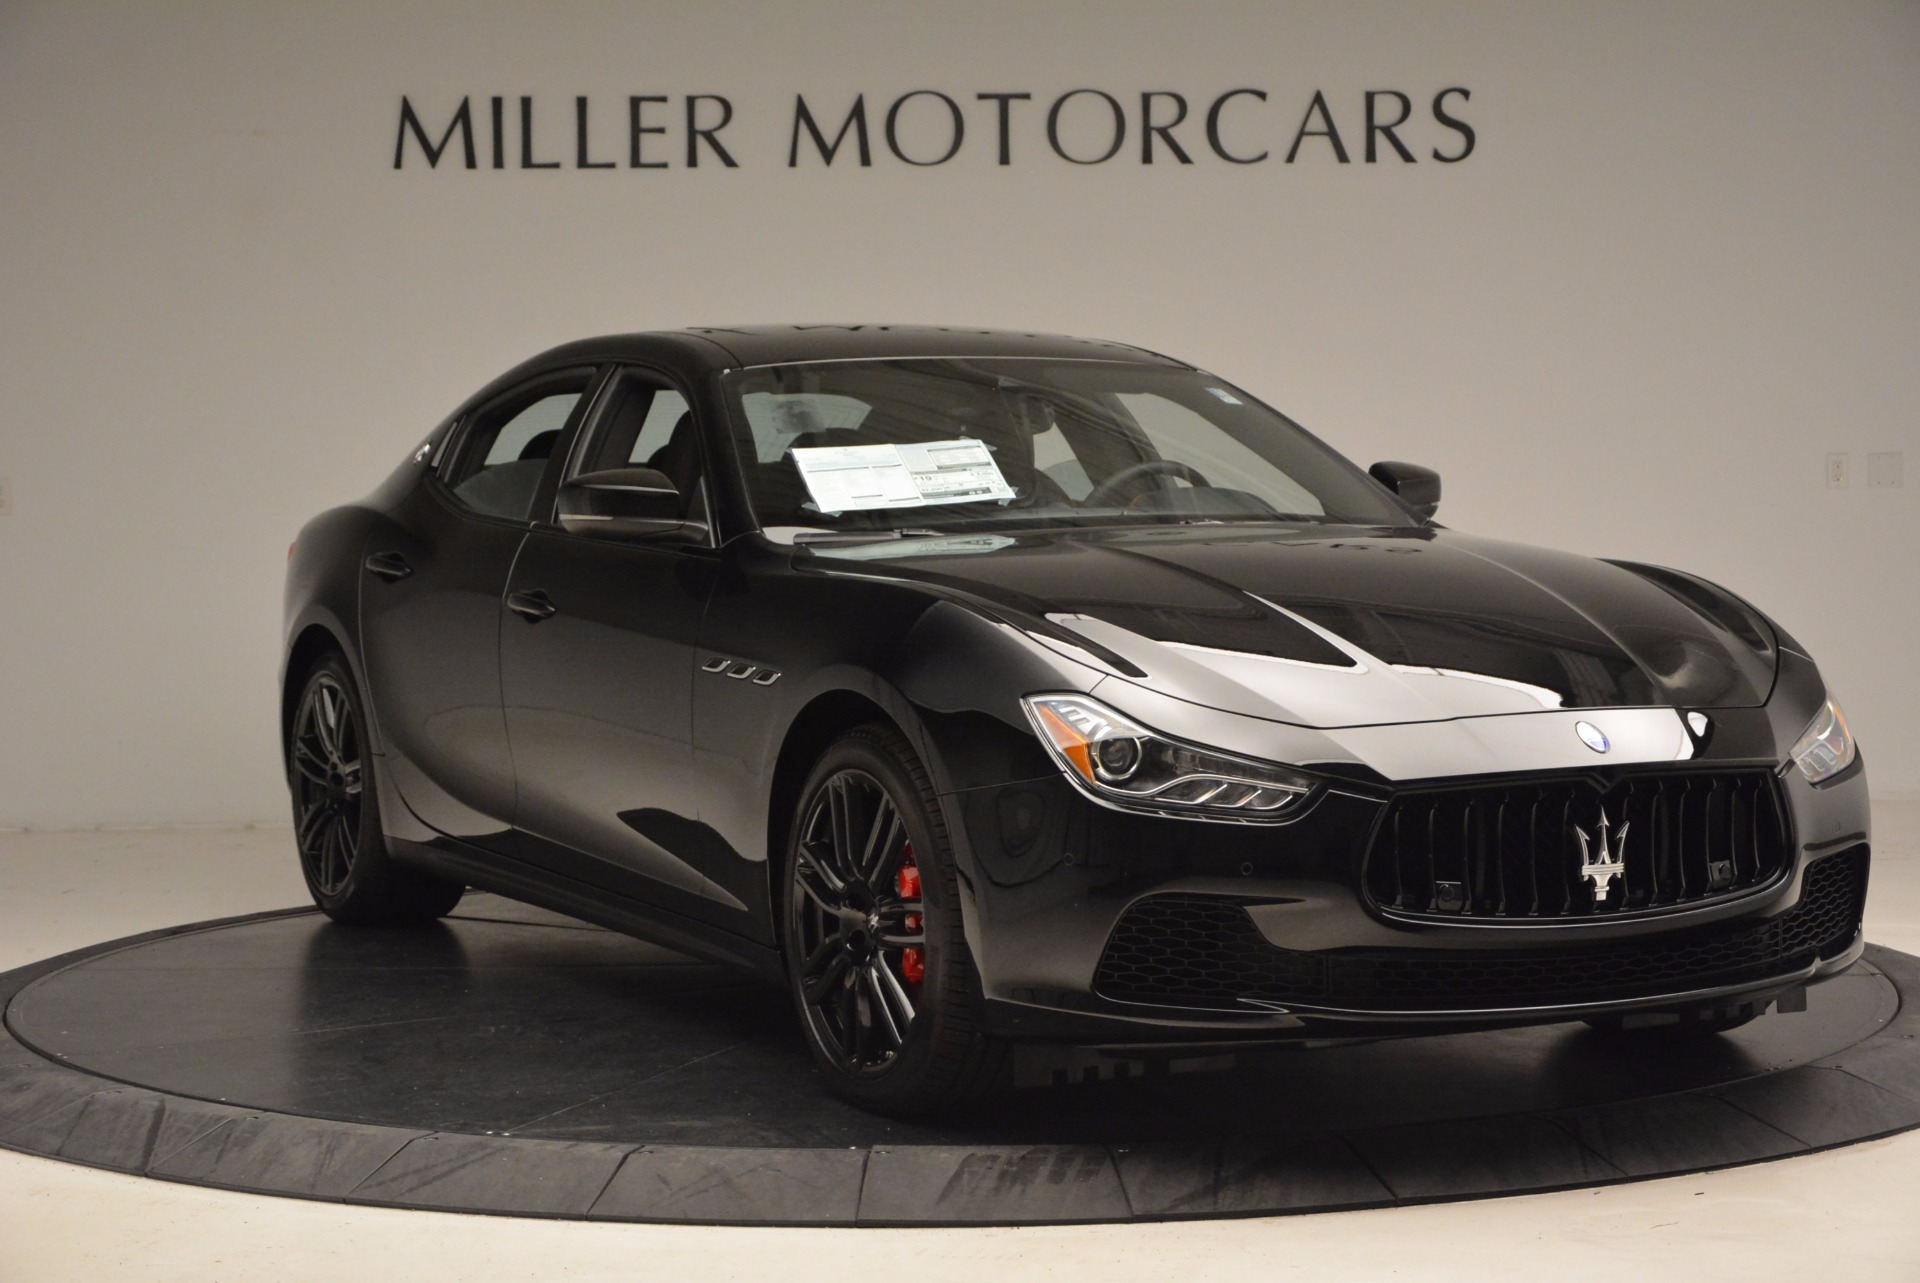 New 2017 Maserati Ghibli Nerissimo Edition S Q4 For Sale In Greenwich, CT 1405_p11